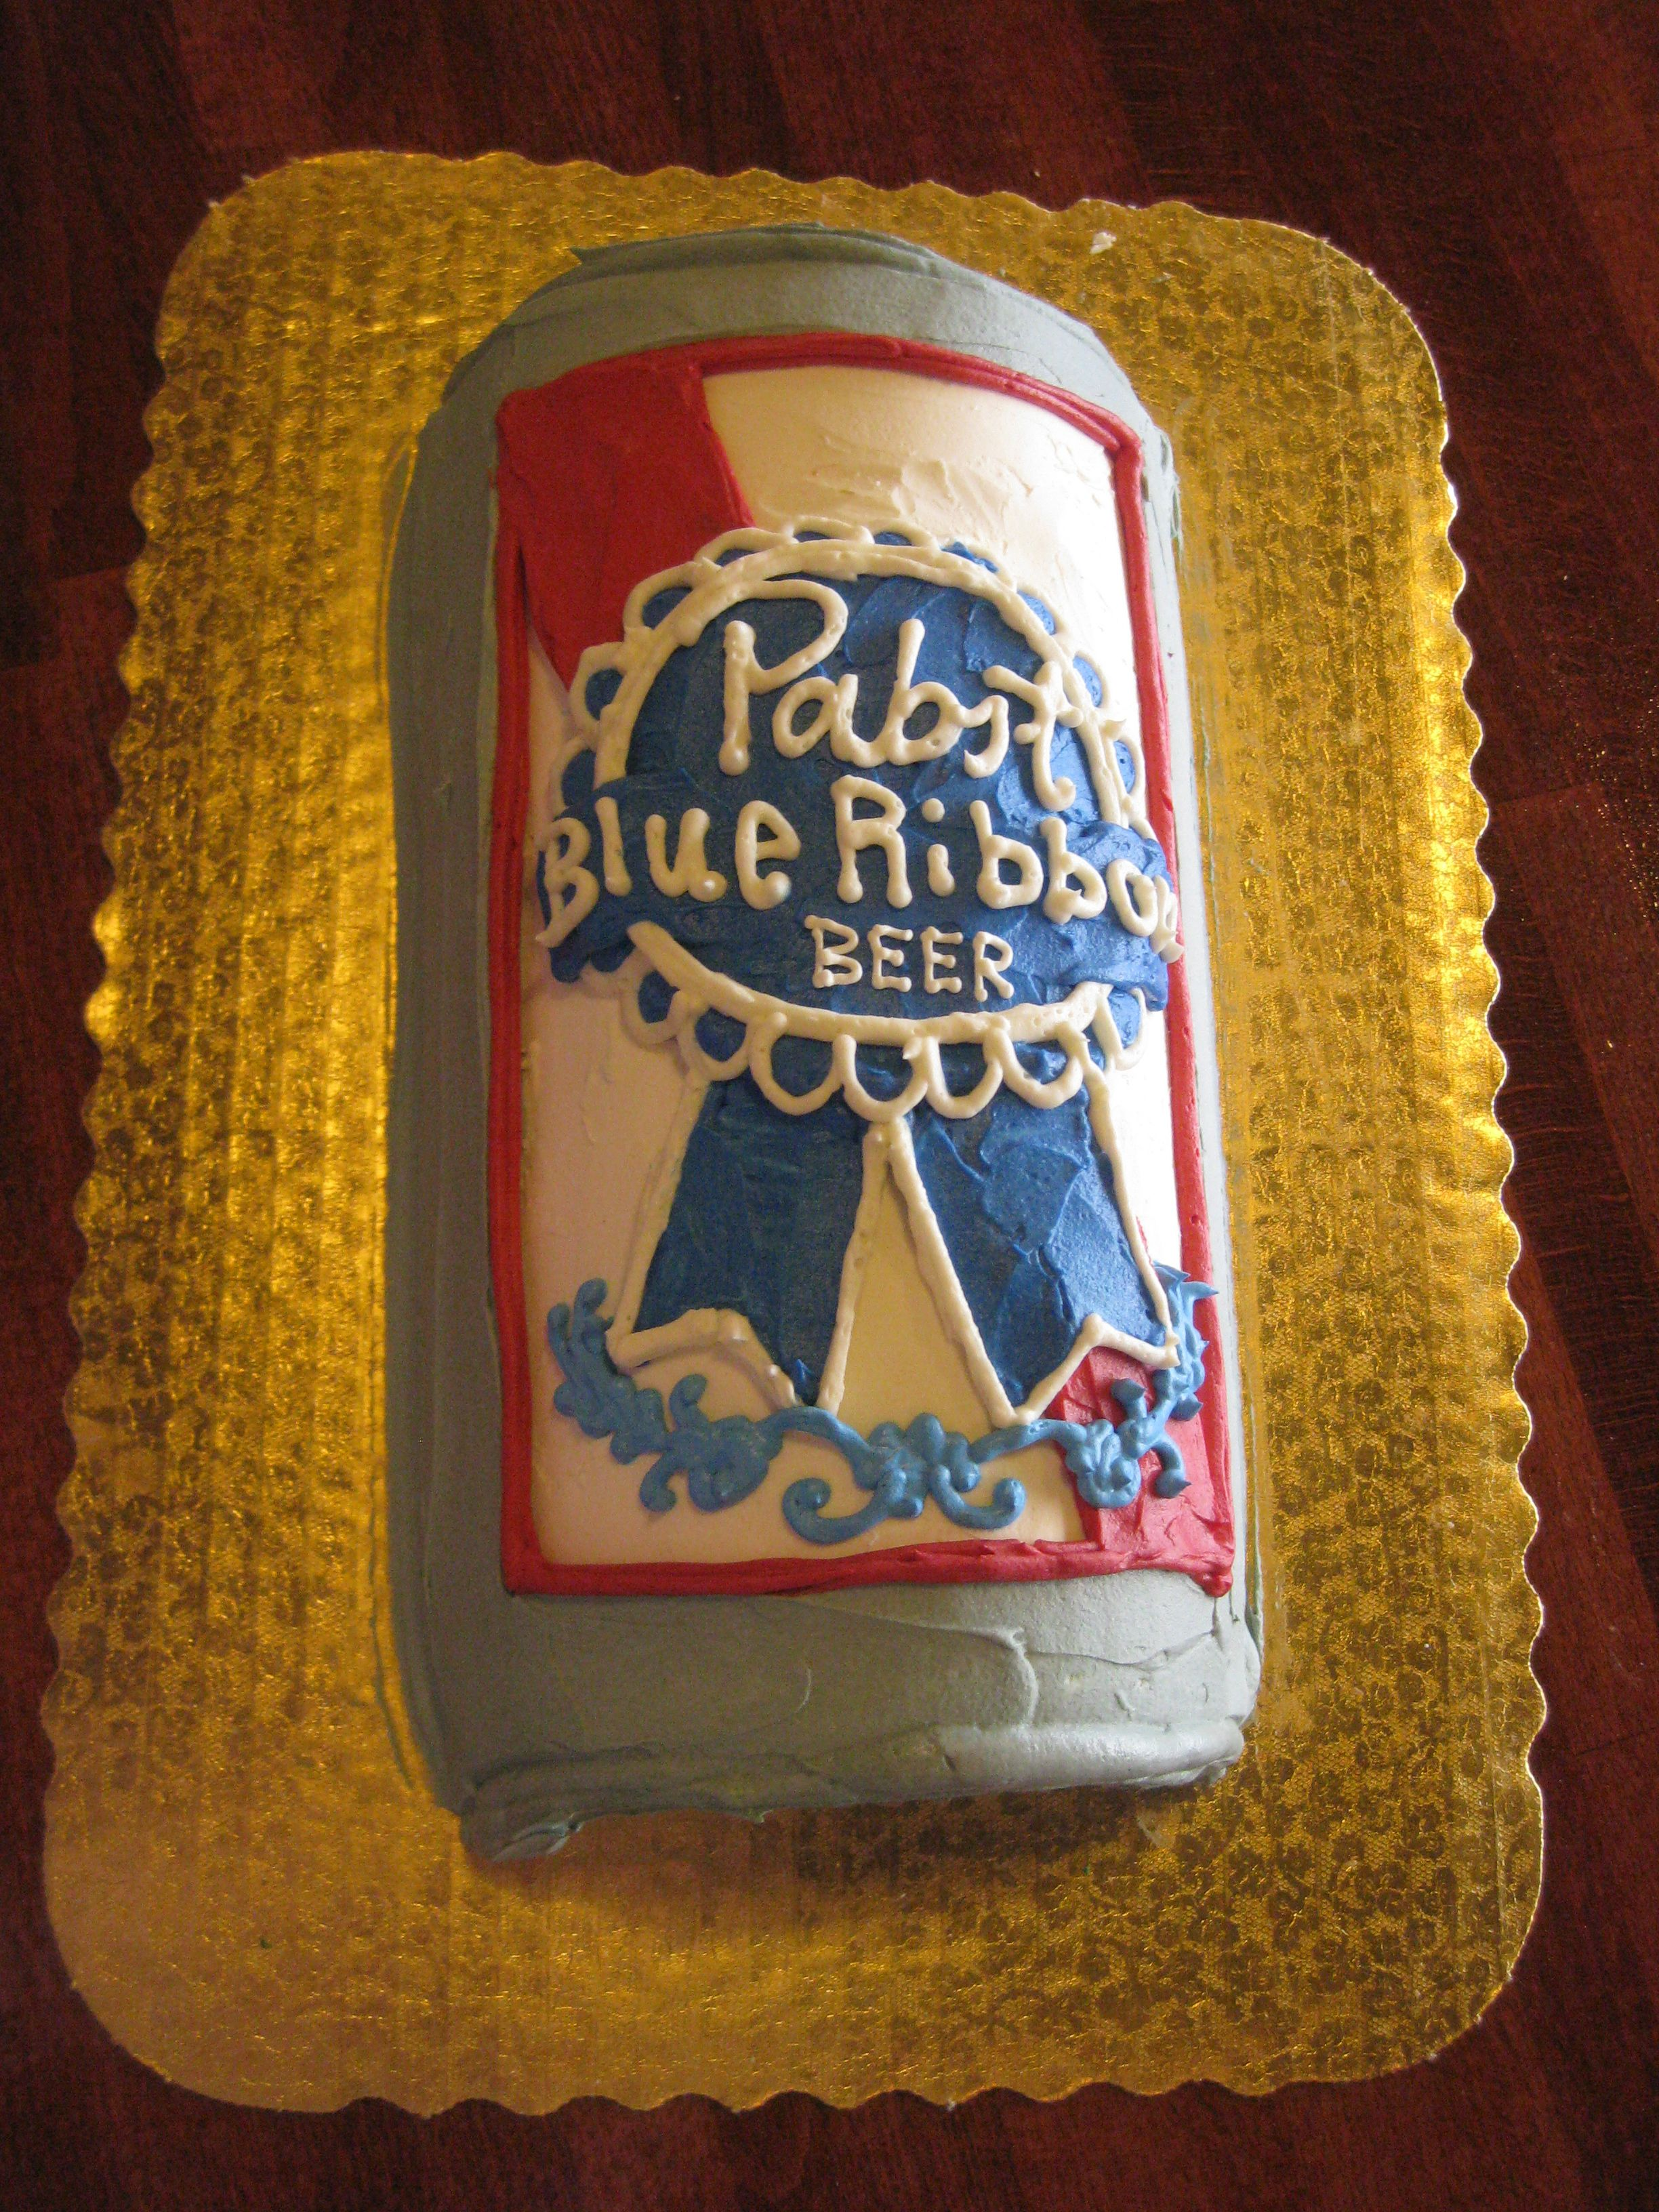 Pabst Blue Ribbon Cake by 2tarts Bakery New Braunfels, TX ...